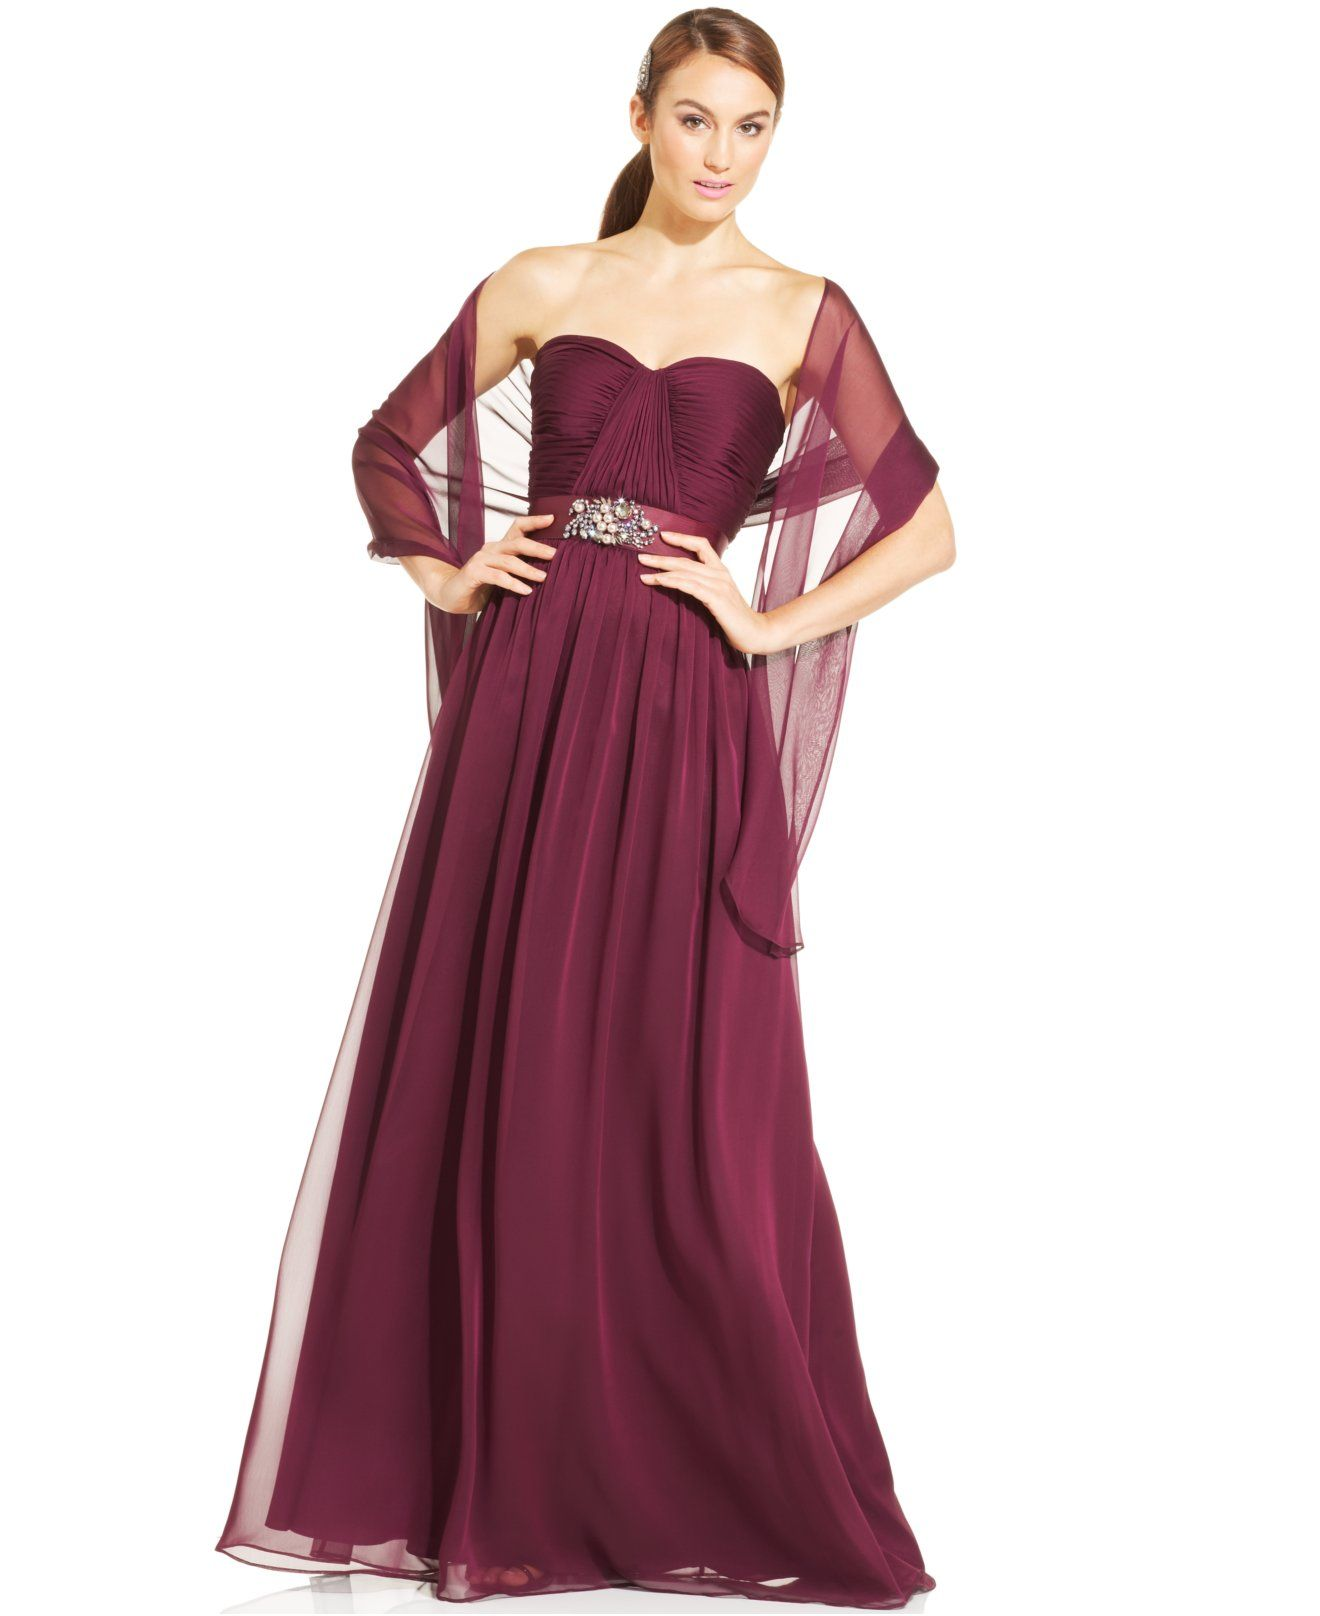 Adrianna papell strapless sweetheart gown and shawl dresses adrianna papell strapless sweetheart gown and shawl bridesmaids women macys ombrellifo Images